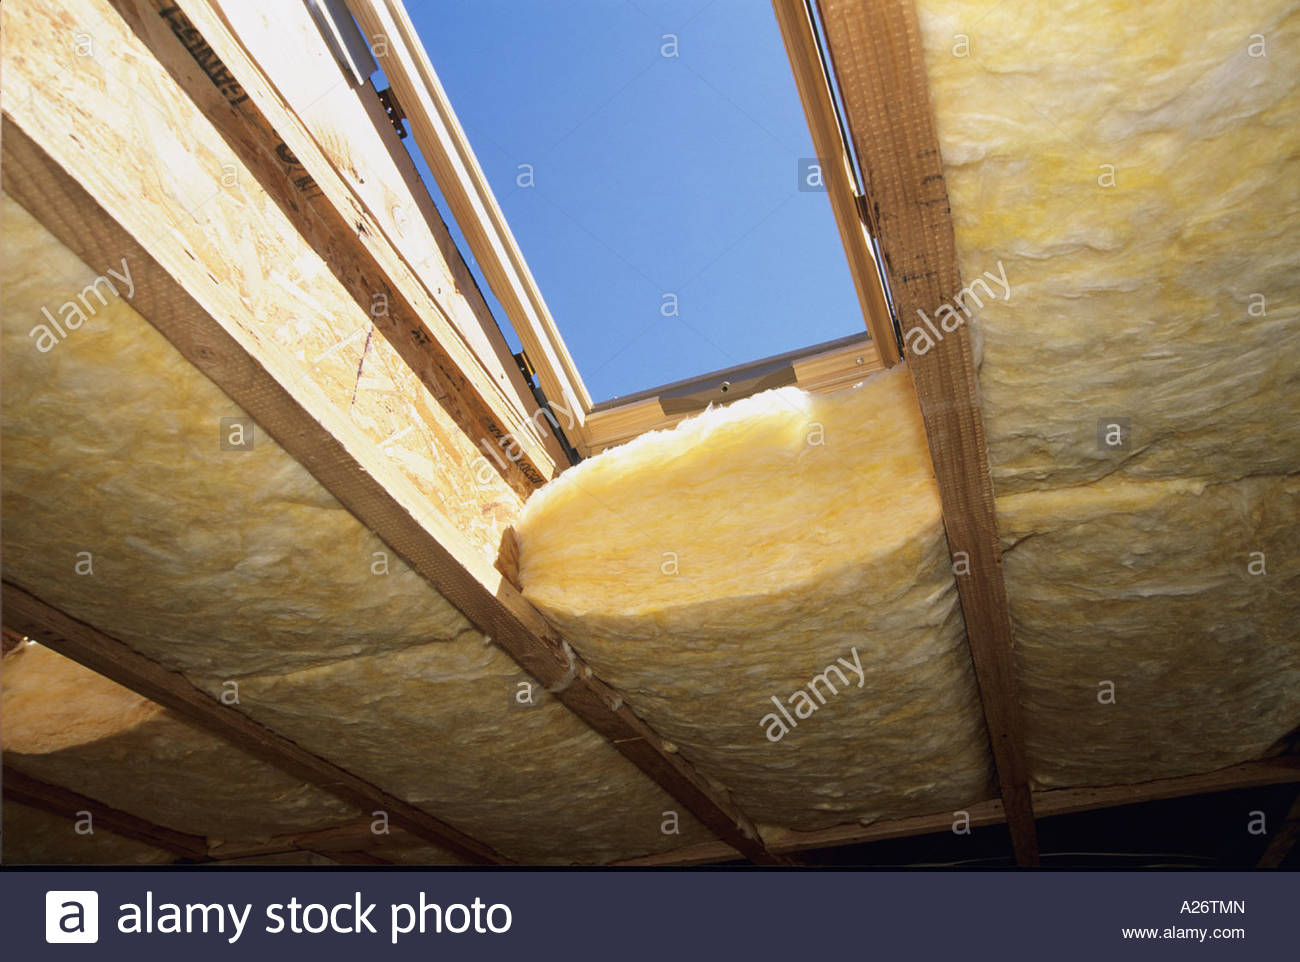 R38 Fiberglass Insulation being installed roof in new loft style home under construction Stock Photo